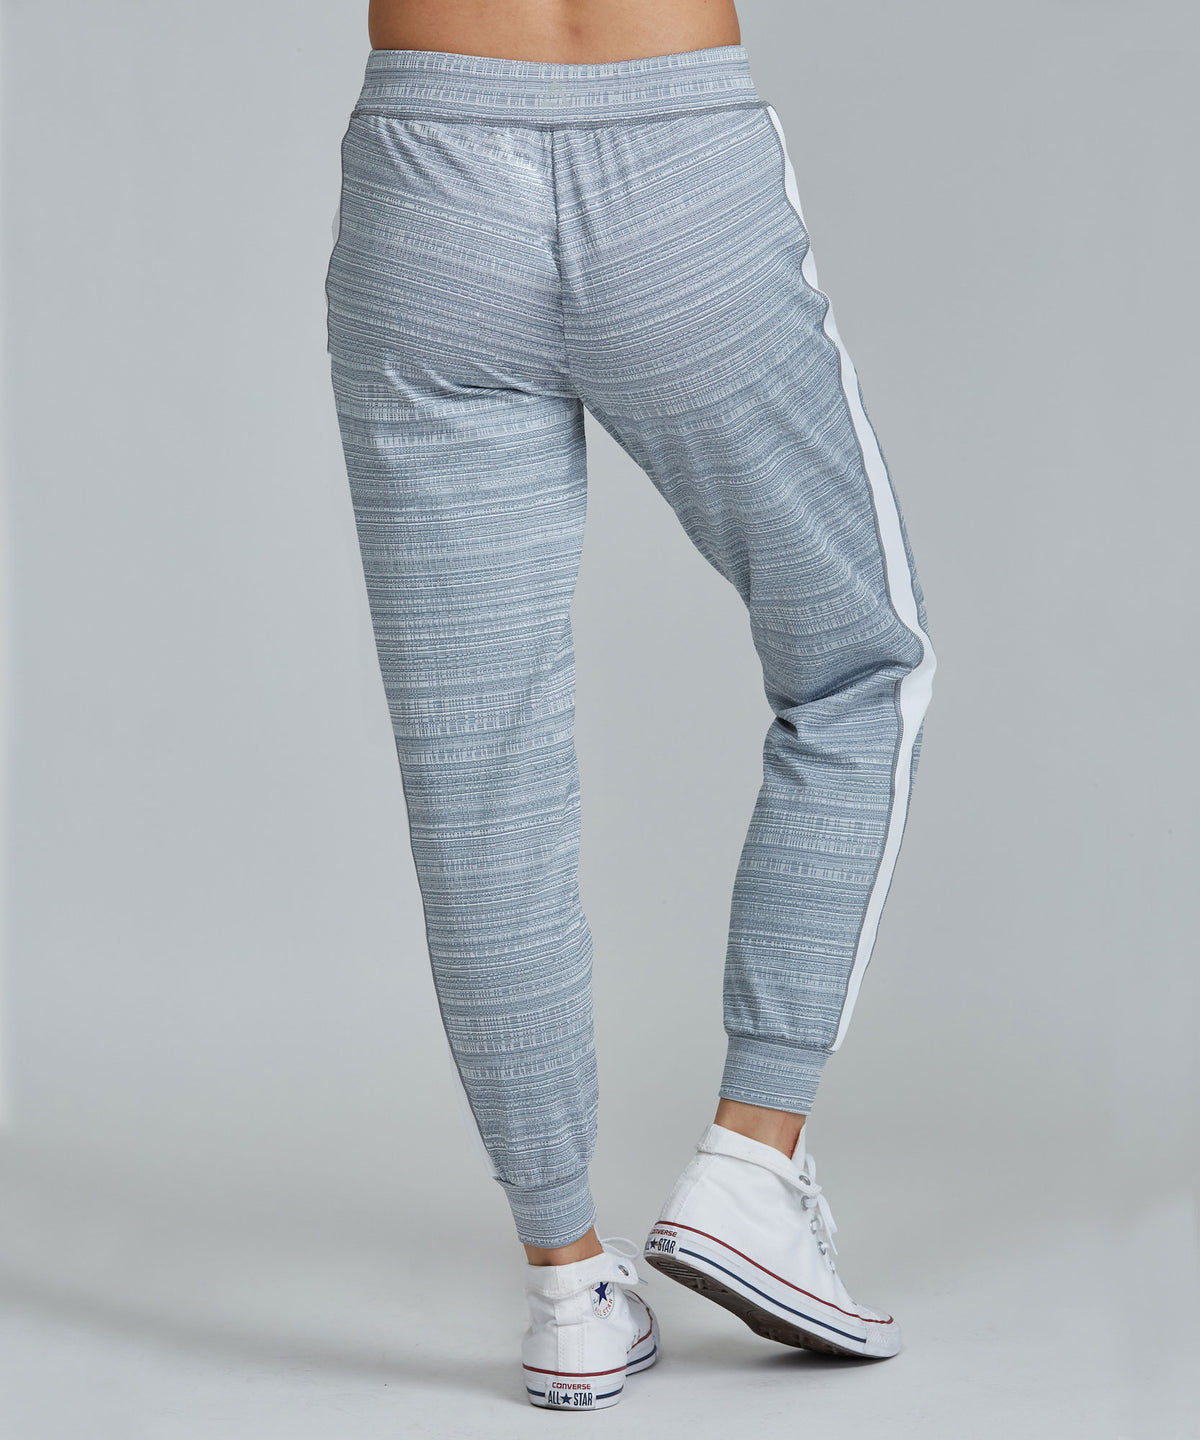 Urban Track Pant - Dove Dove Urban Track Pant - Women's Activewear Pant by PRISMSPORT